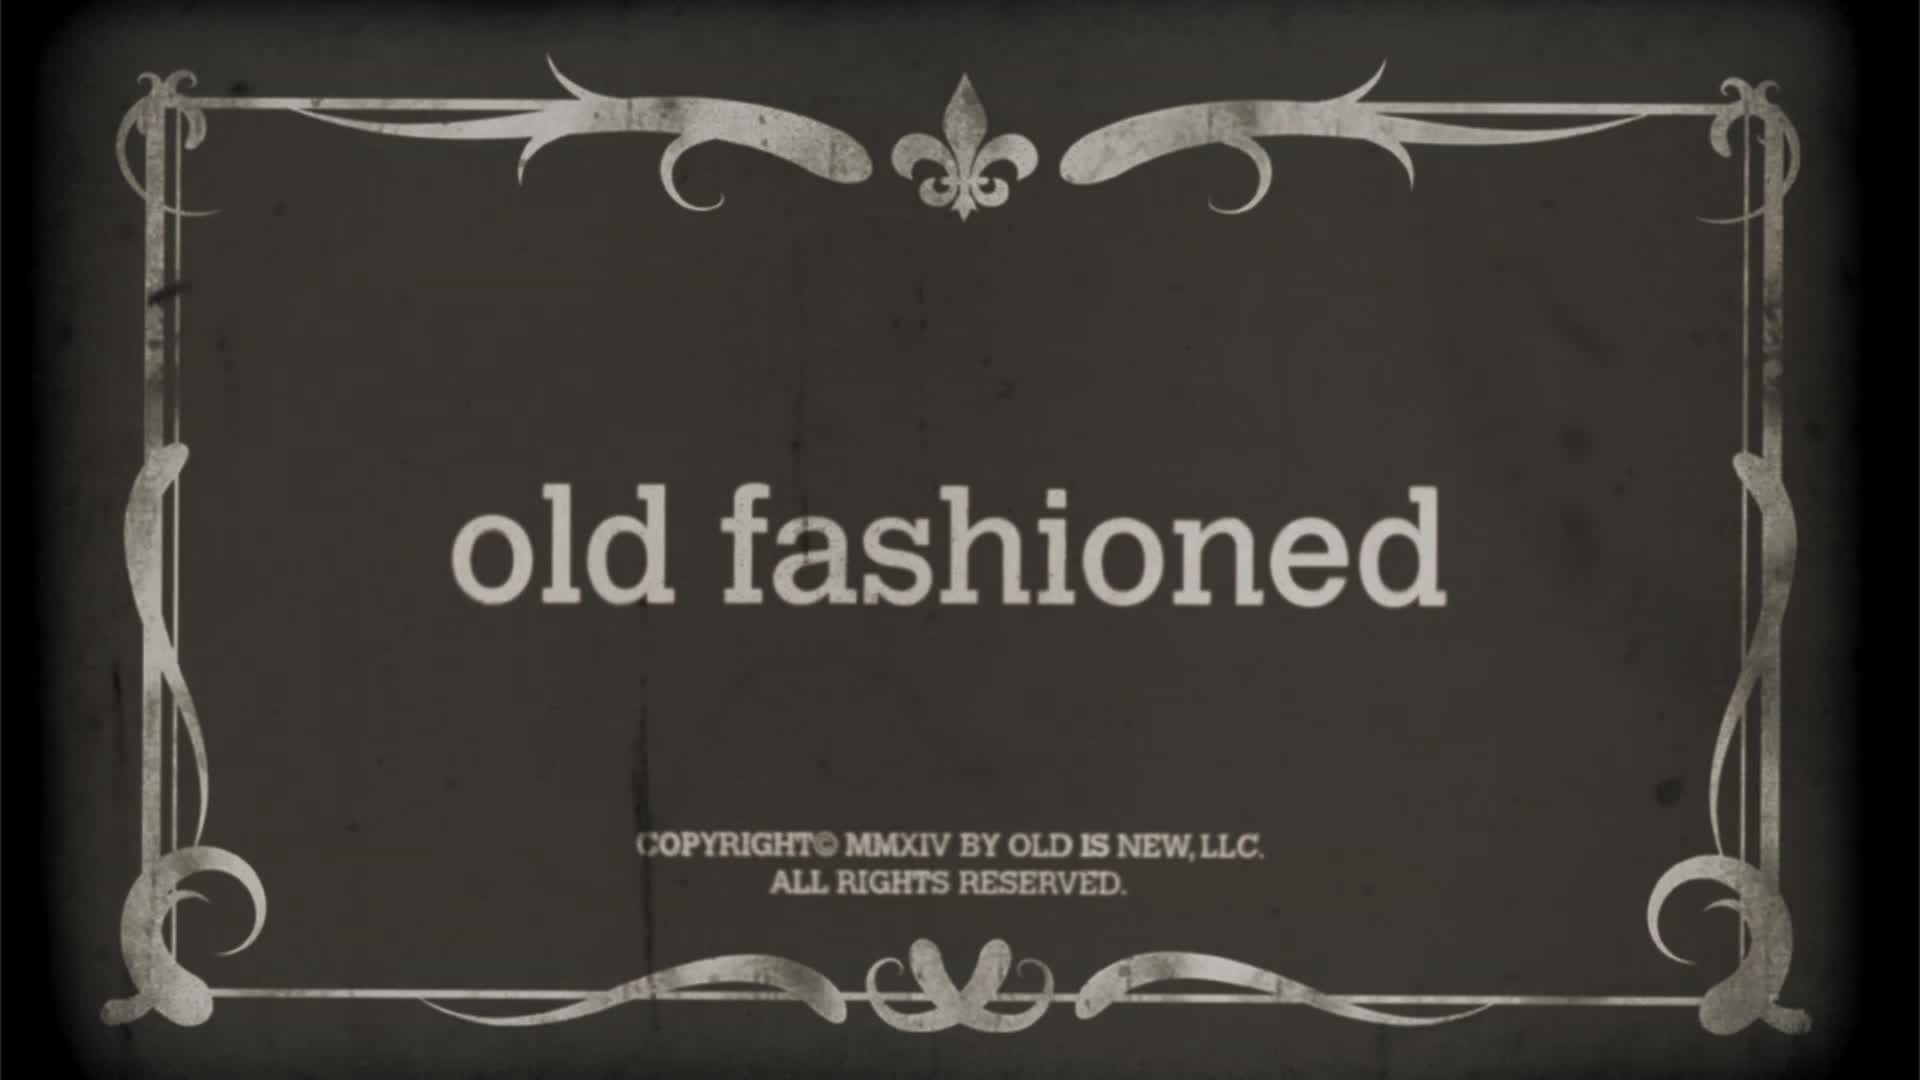 10 old fashioned dating